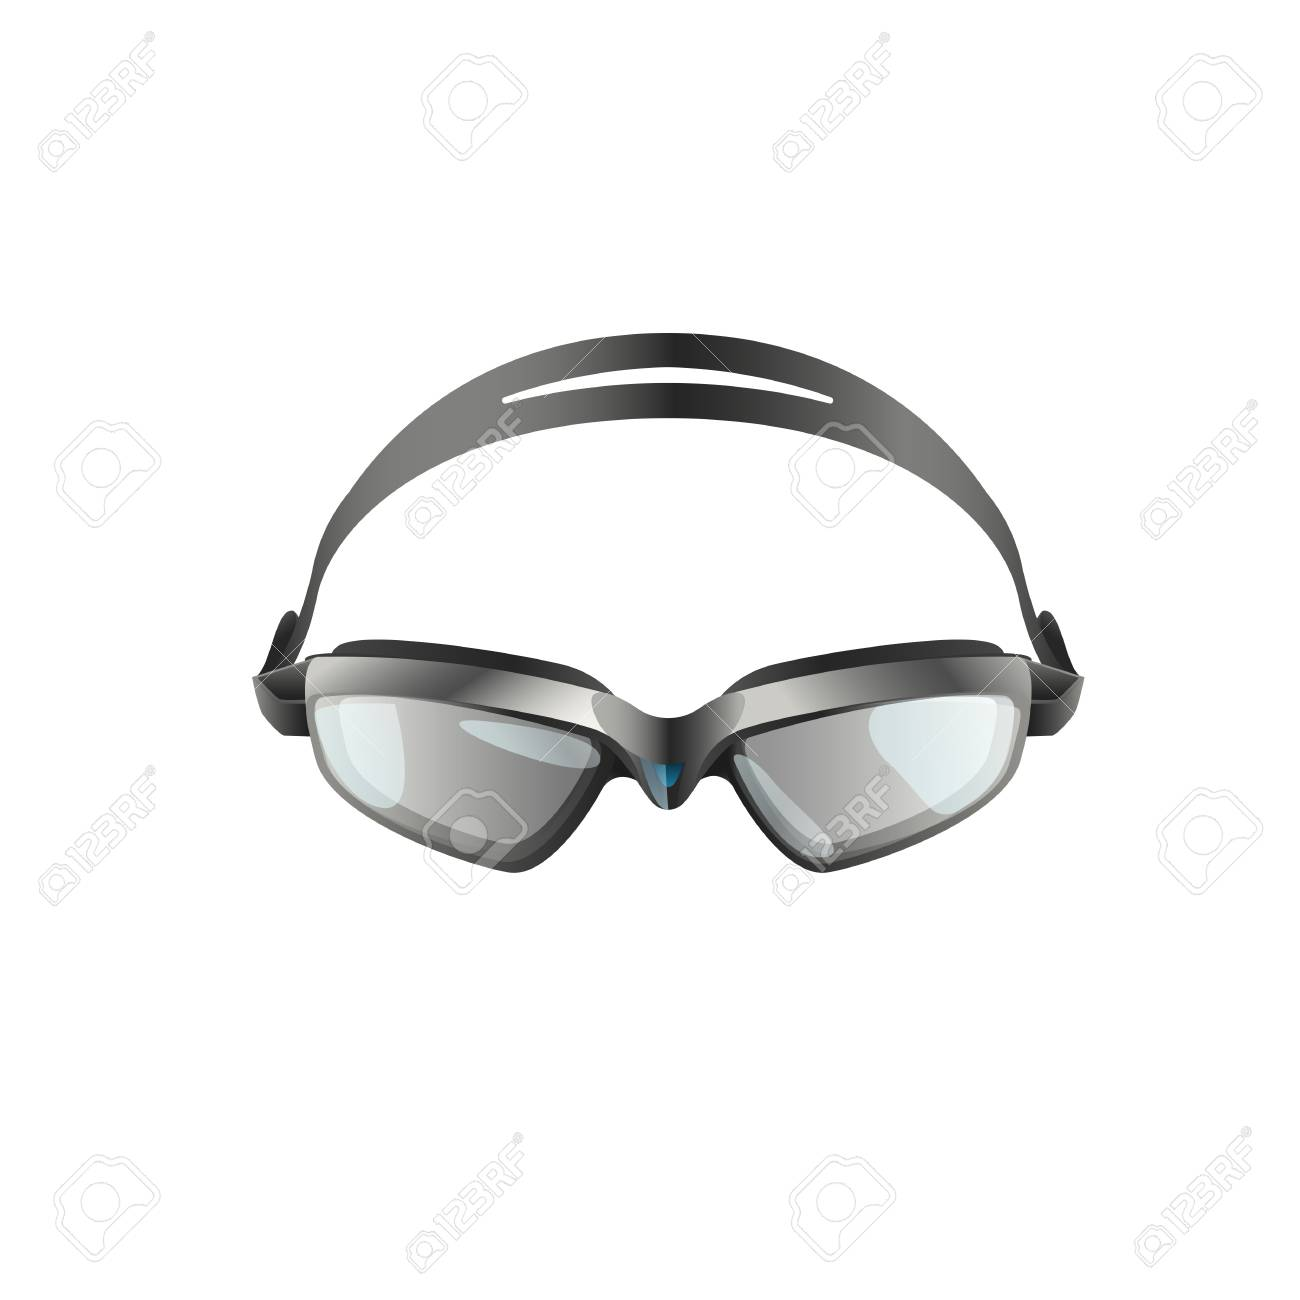 Swimming goggles flat icon. Swimming pool, professional sport,..